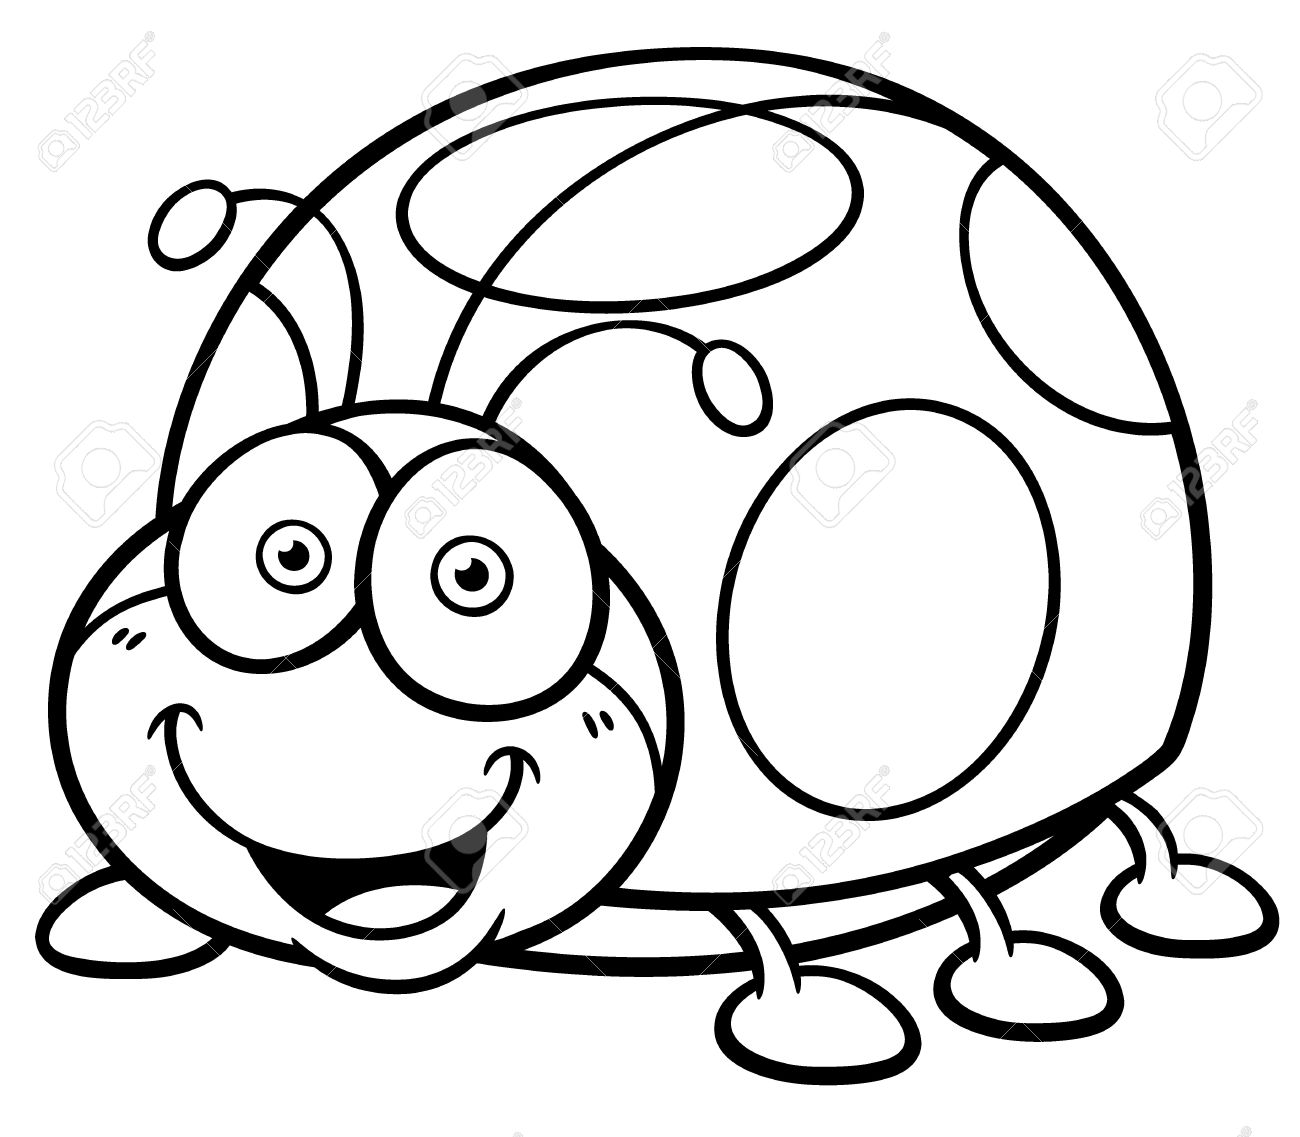 coloring page ladybug line art of cute ladybug with hearts free clip art page ladybug coloring